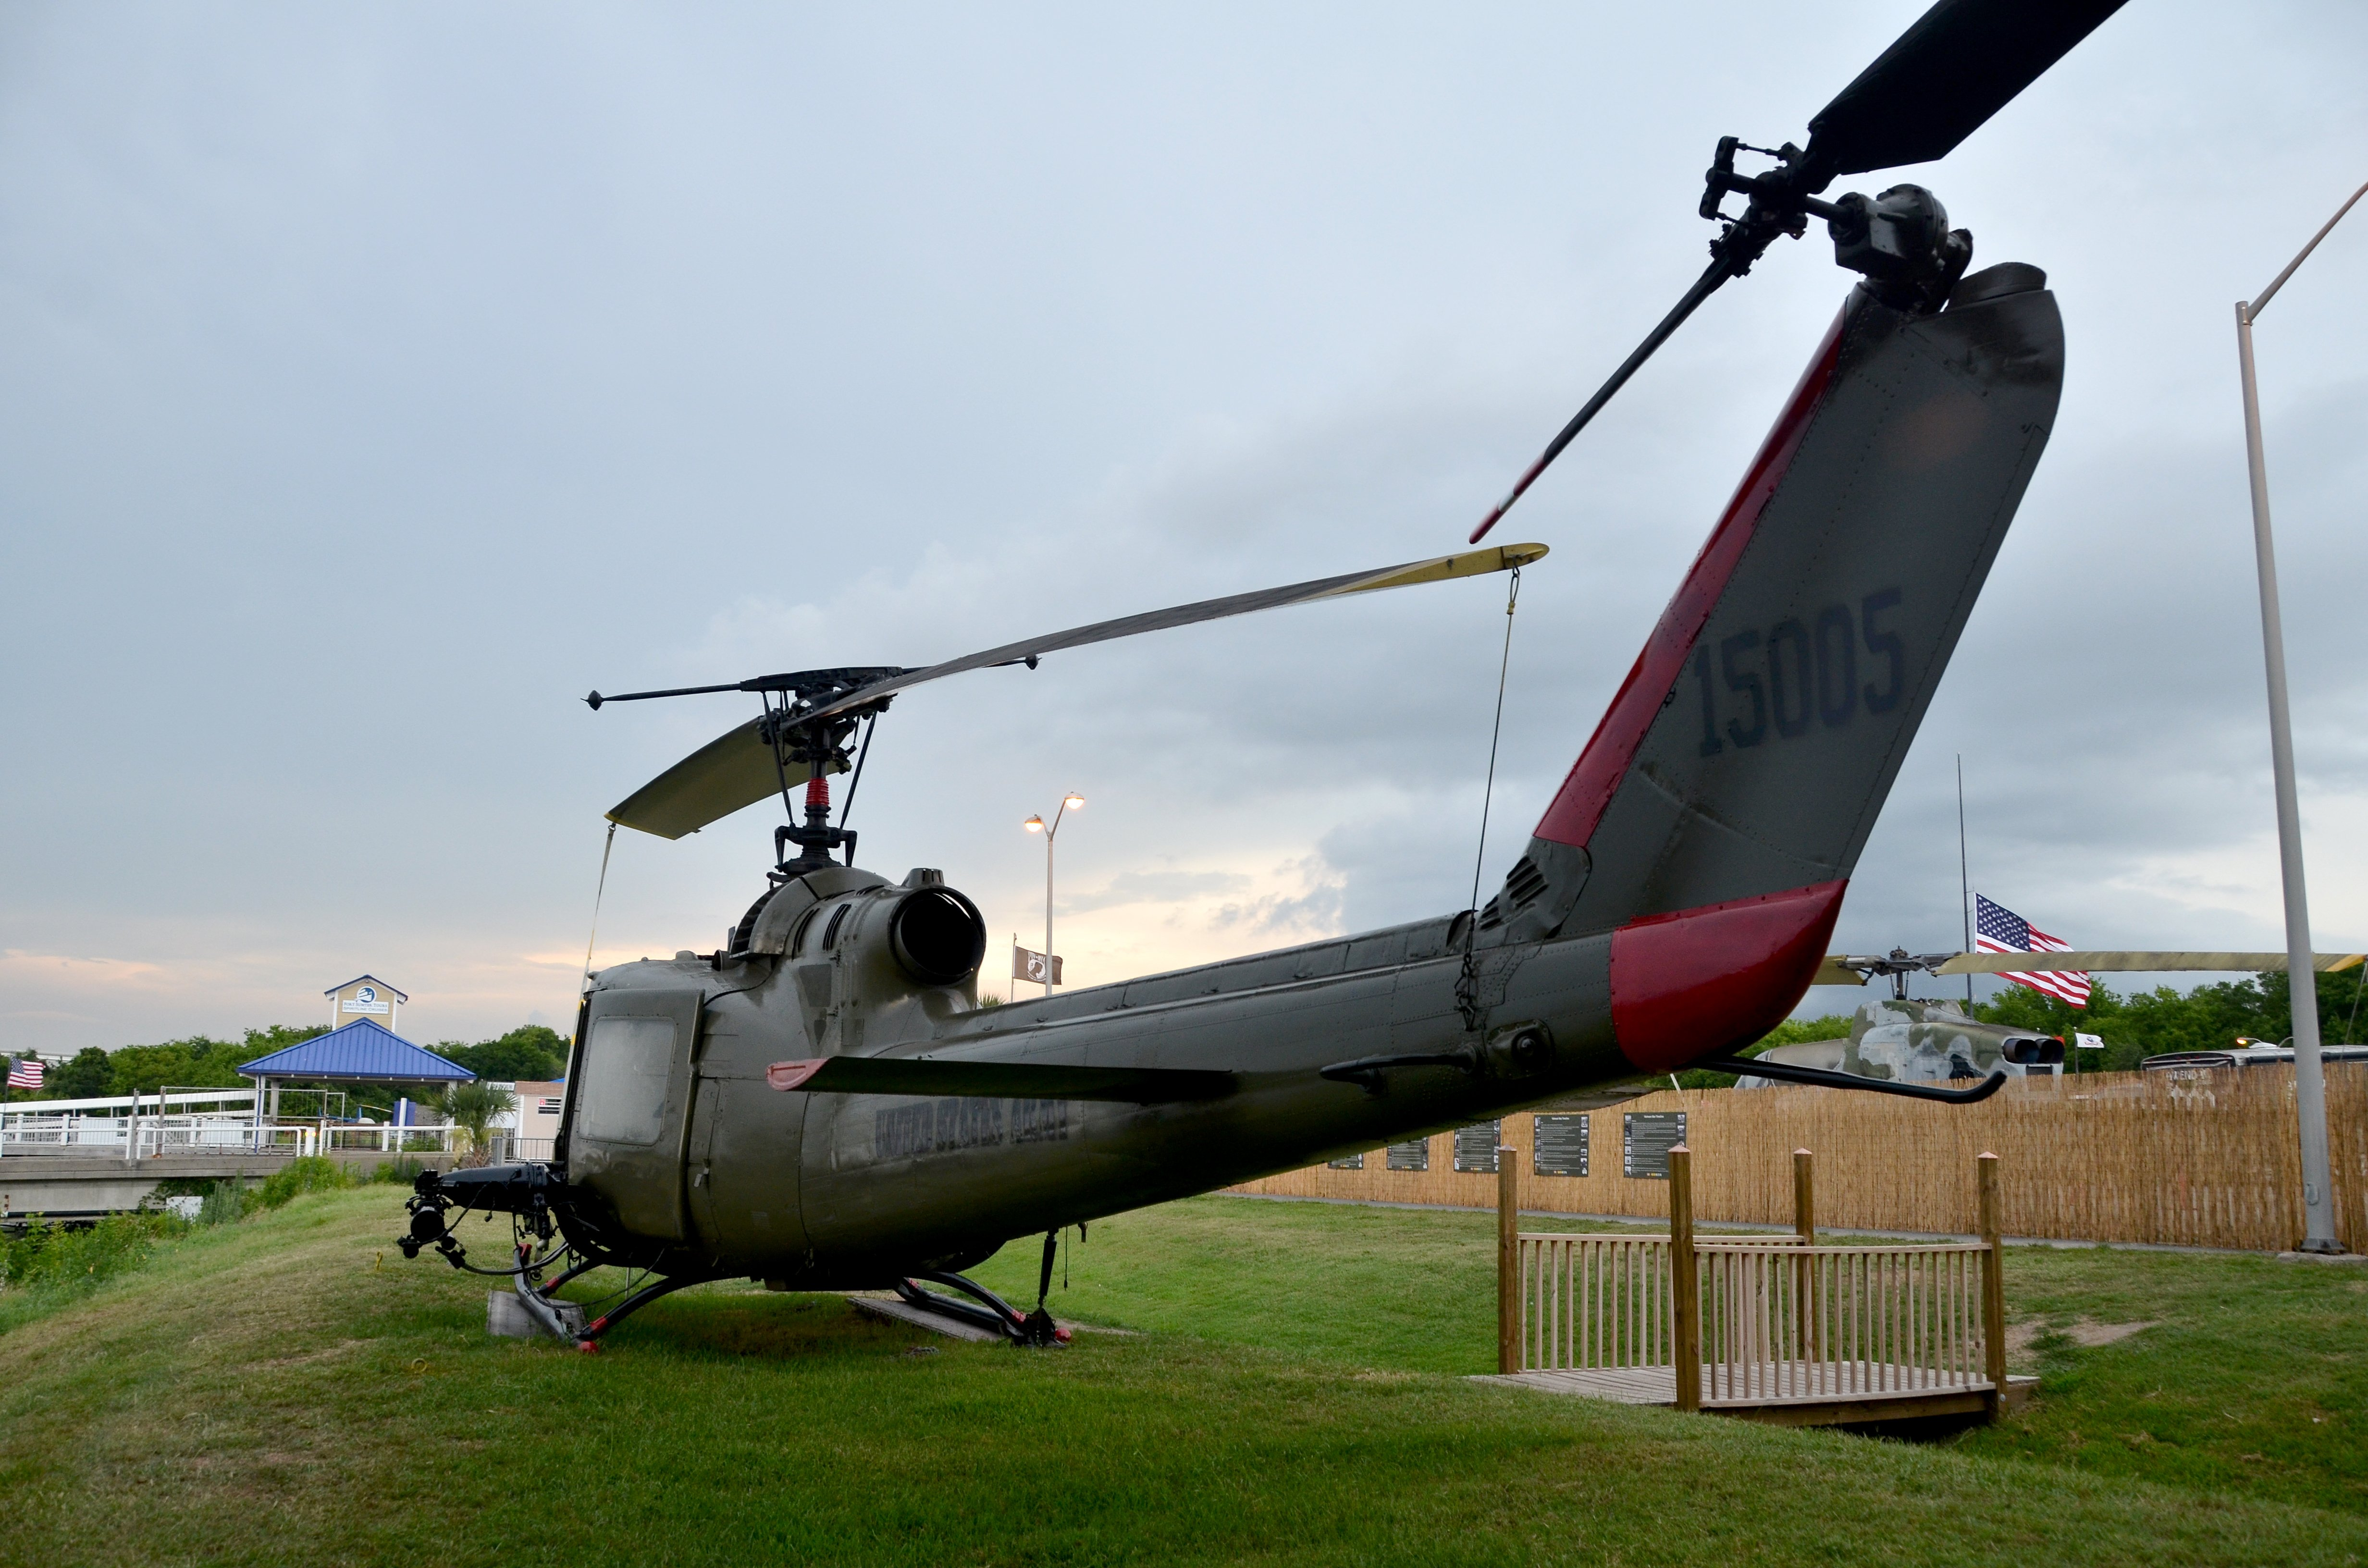 Huey Helicopter in Vietnam Experience Dedicated to Fallen